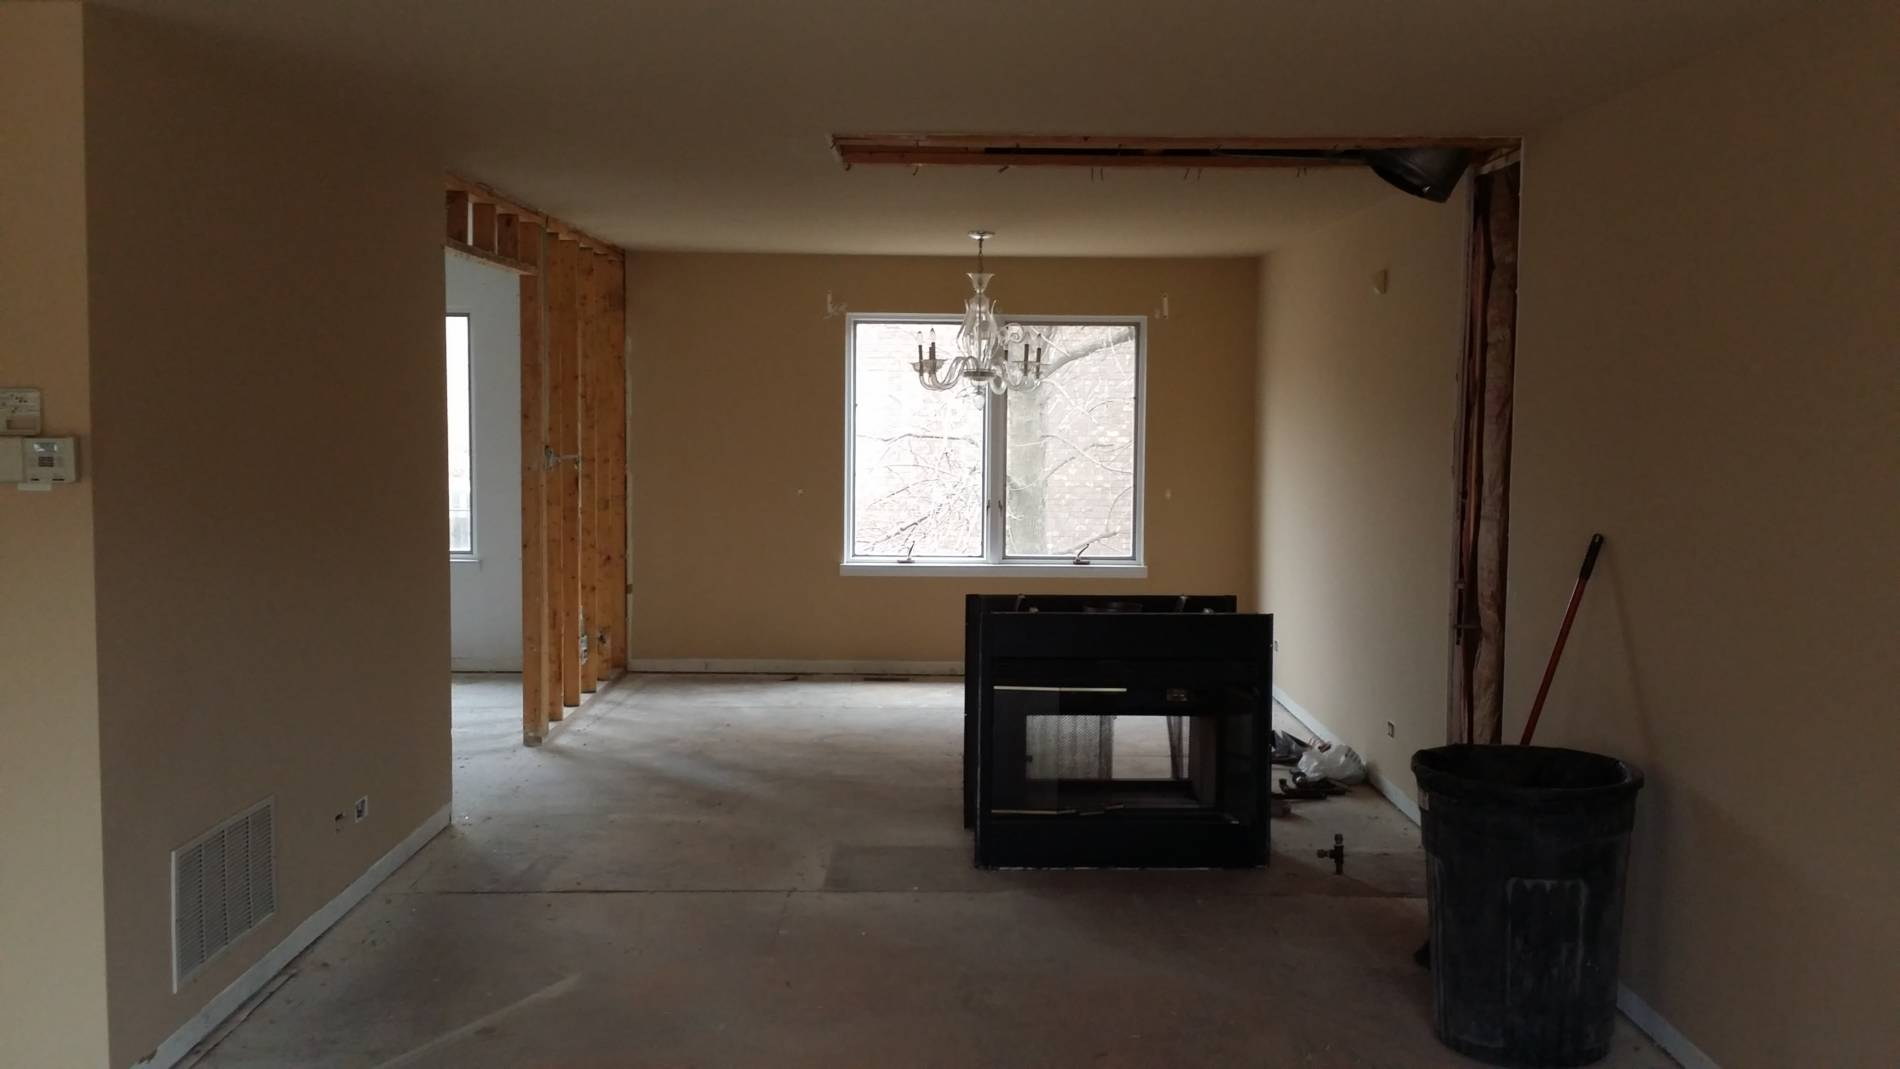 1-23-17 8109 S Indiana Dining Room Before